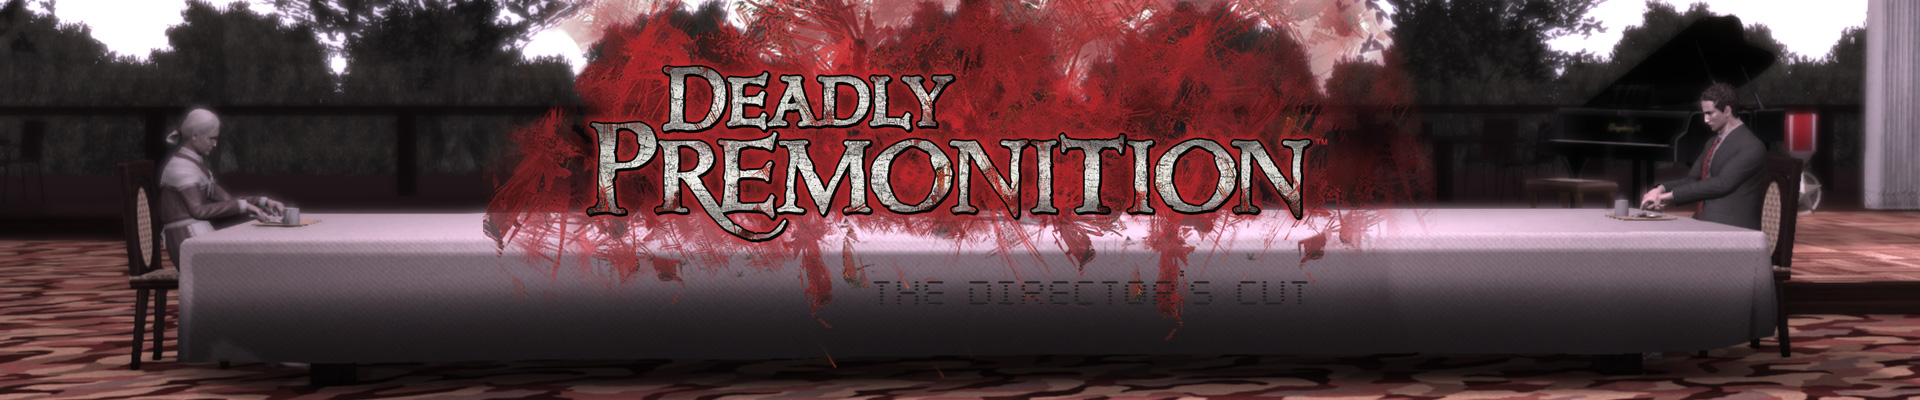 Возвращаясь в Deadly Premonition: The Director's Cut